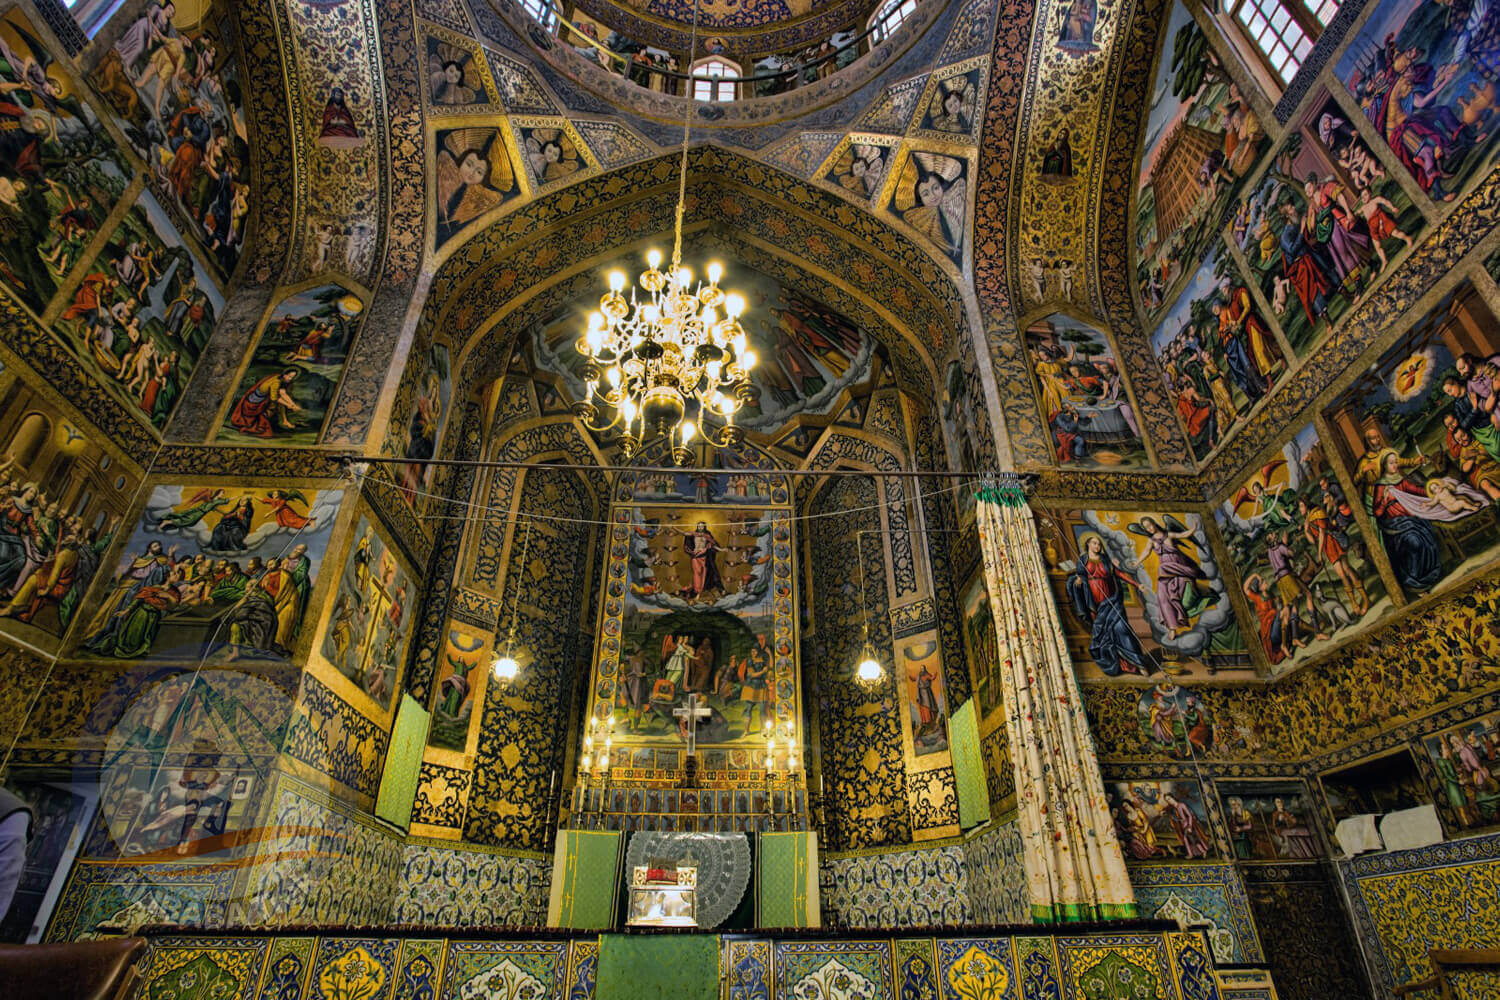 Alibabatrek iran deserts and culture tour Vank Cathedral